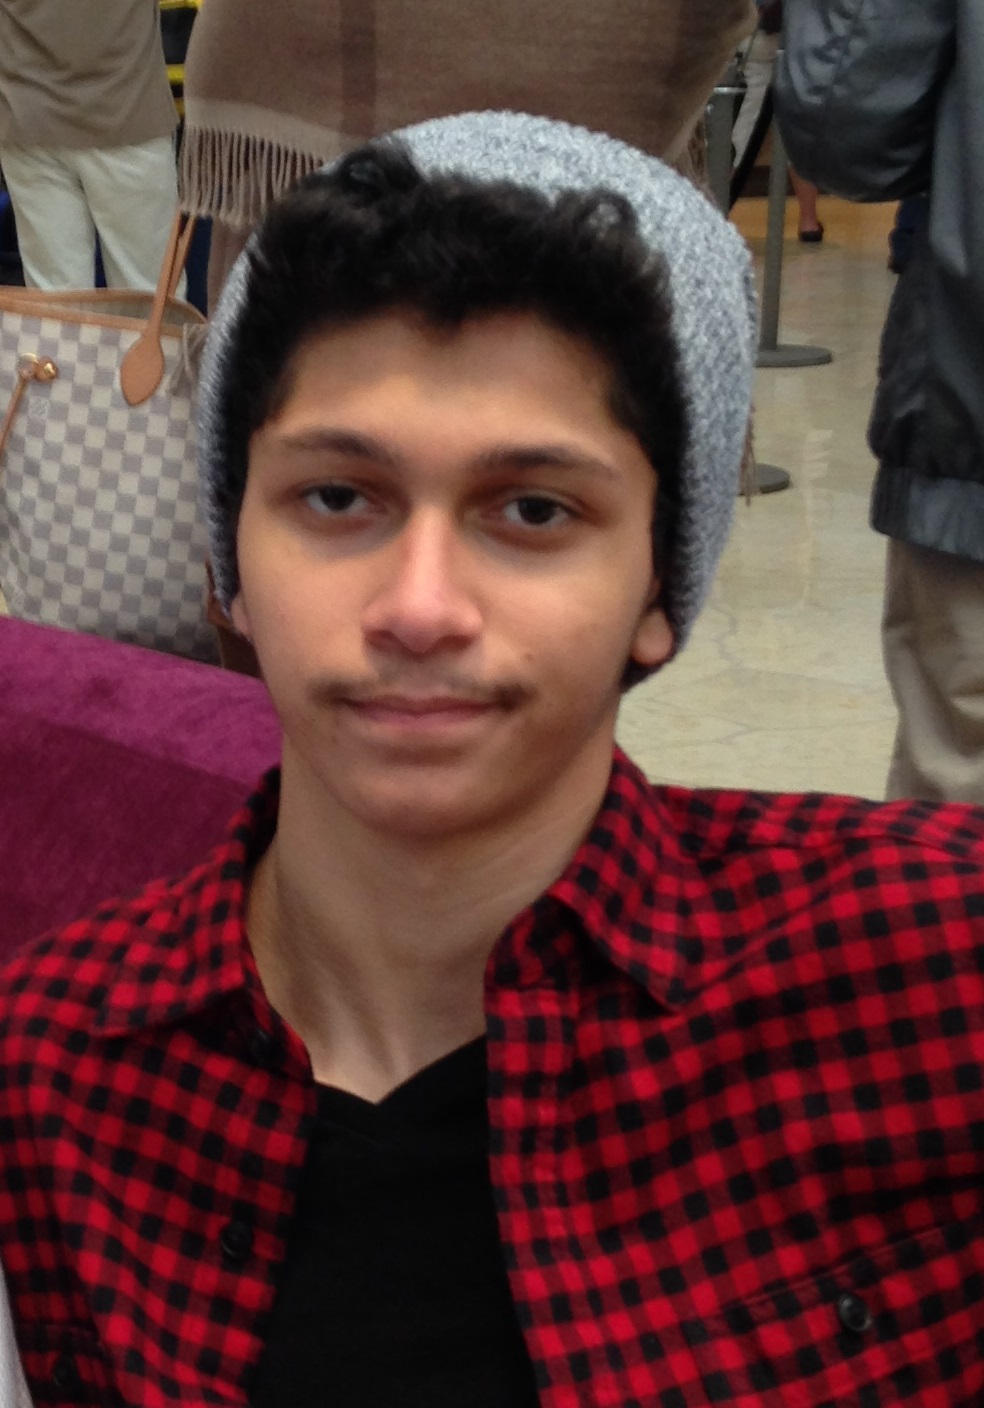 The story of Ali Shukri Amin: How a Virginia teen came to support ISIL